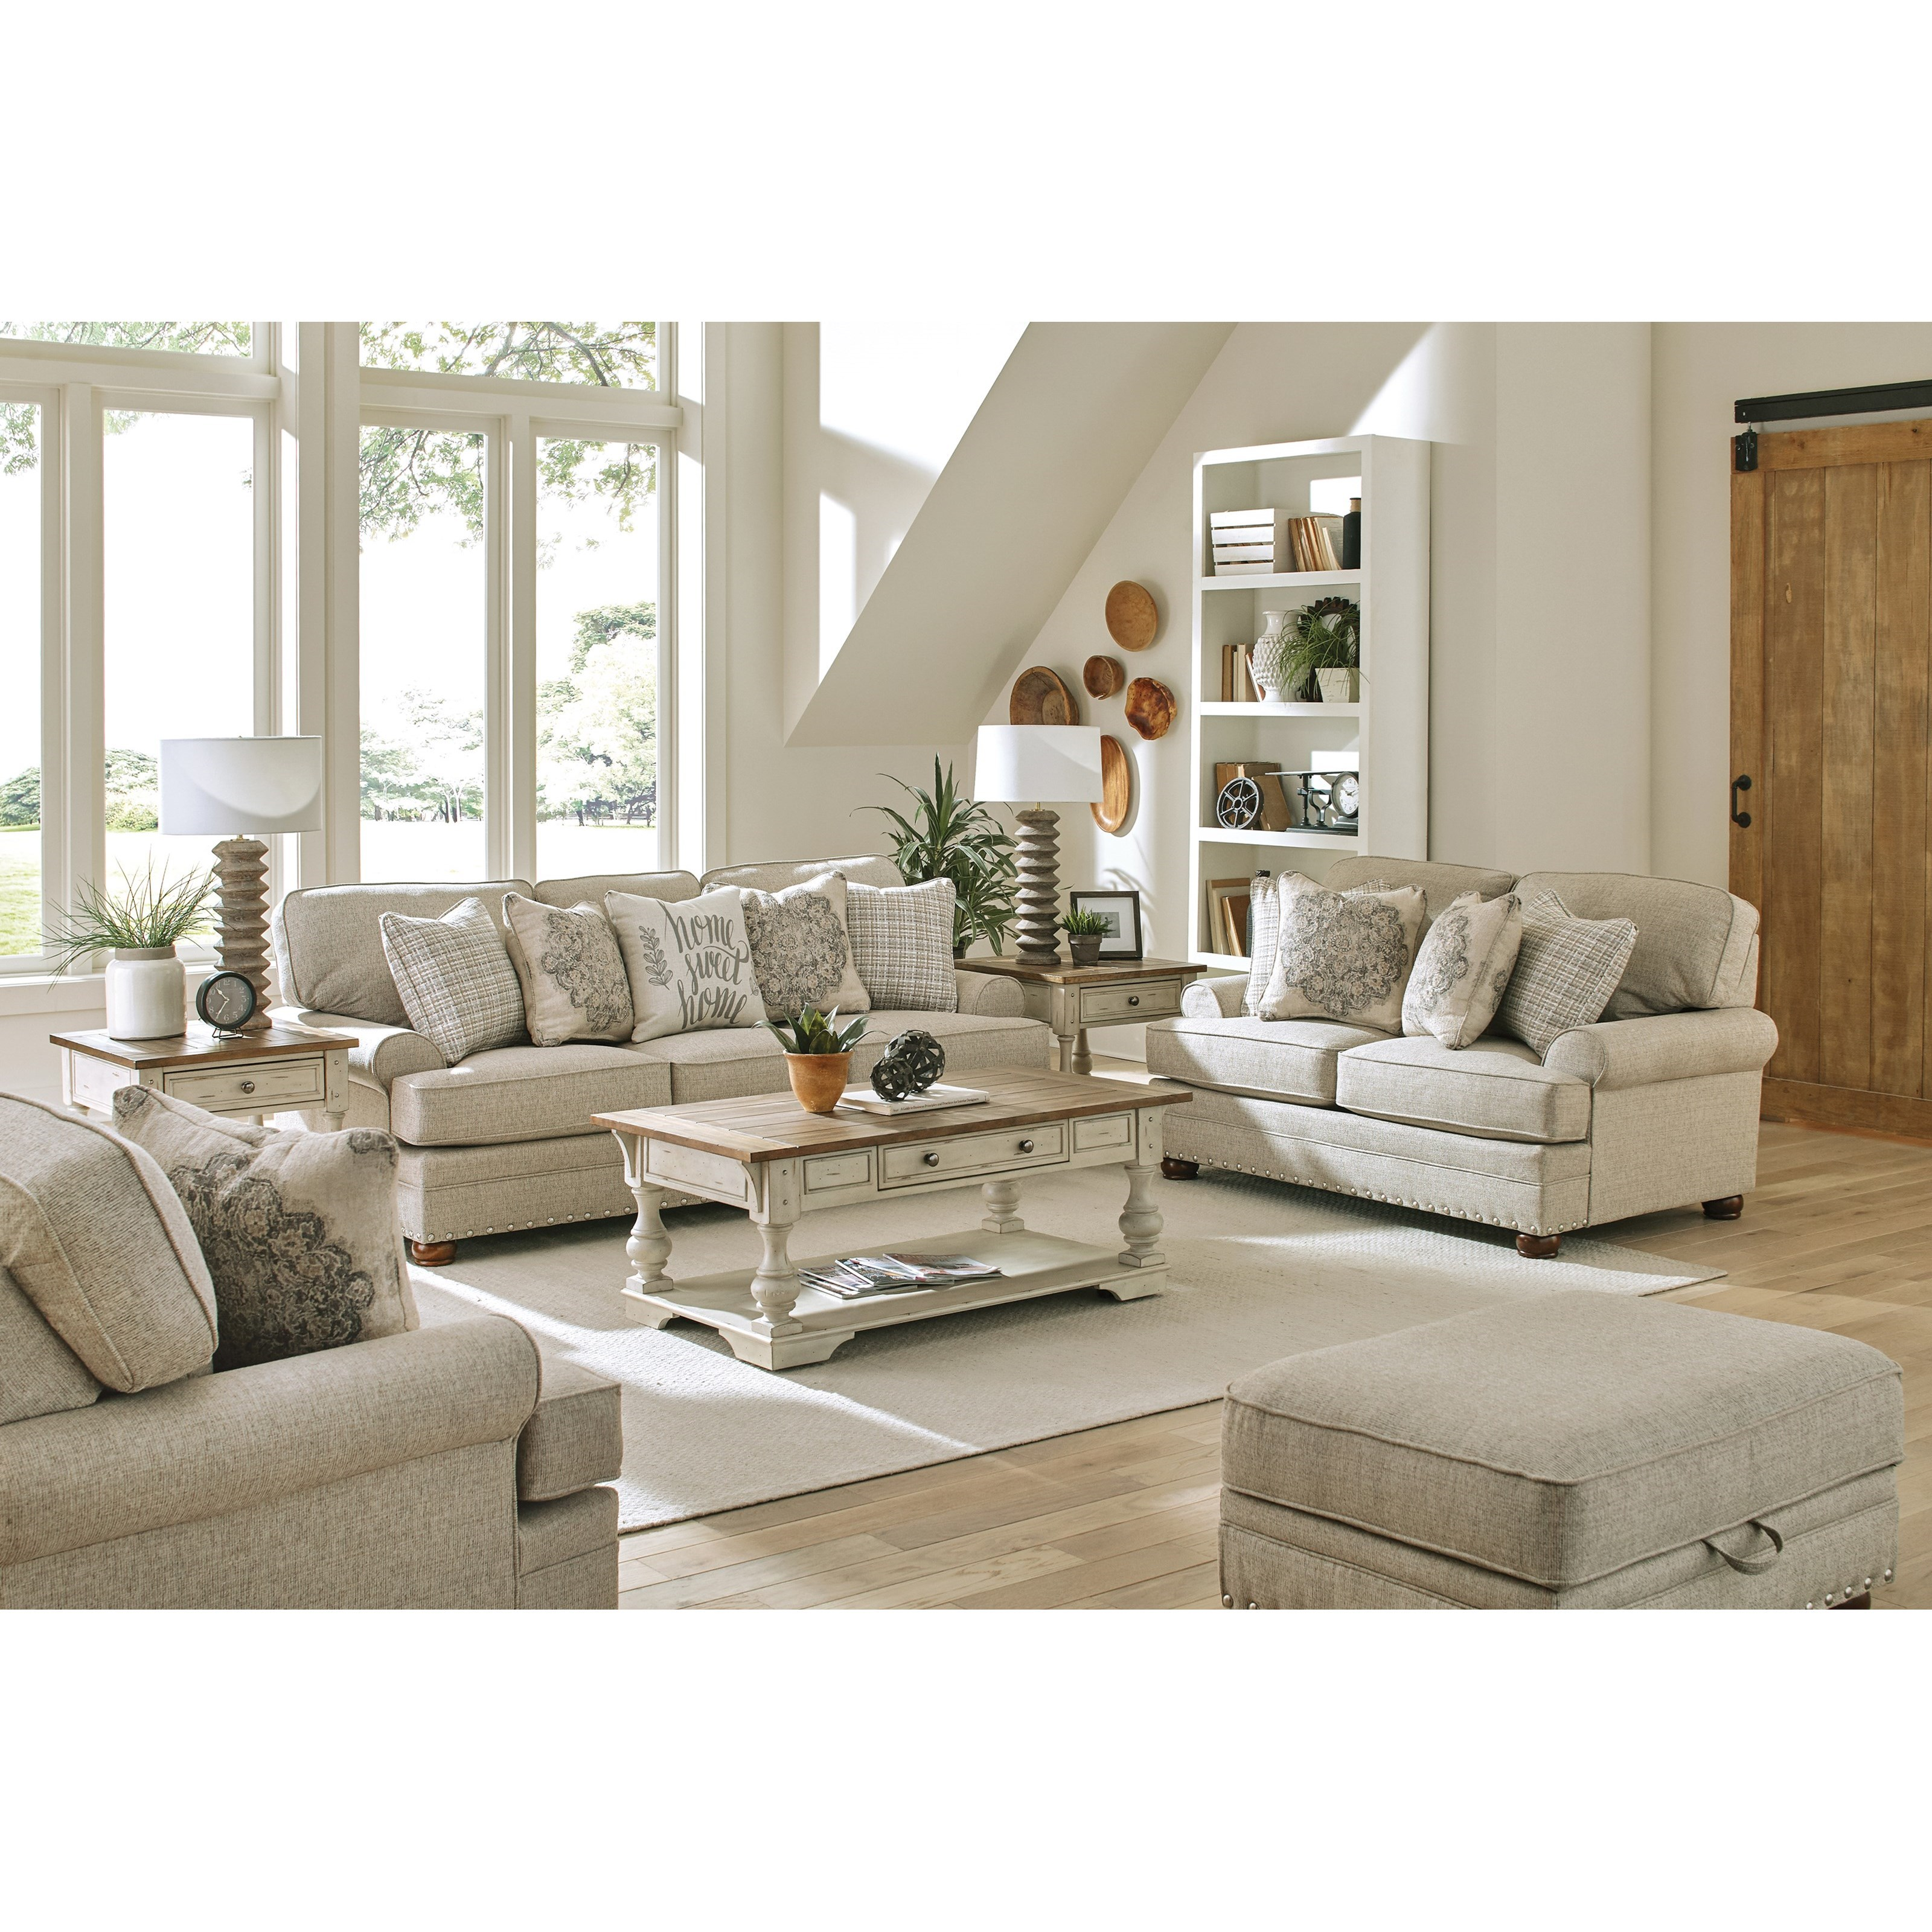 Farmington Living Room Group by Jackson Furniture at Northeast Factory Direct